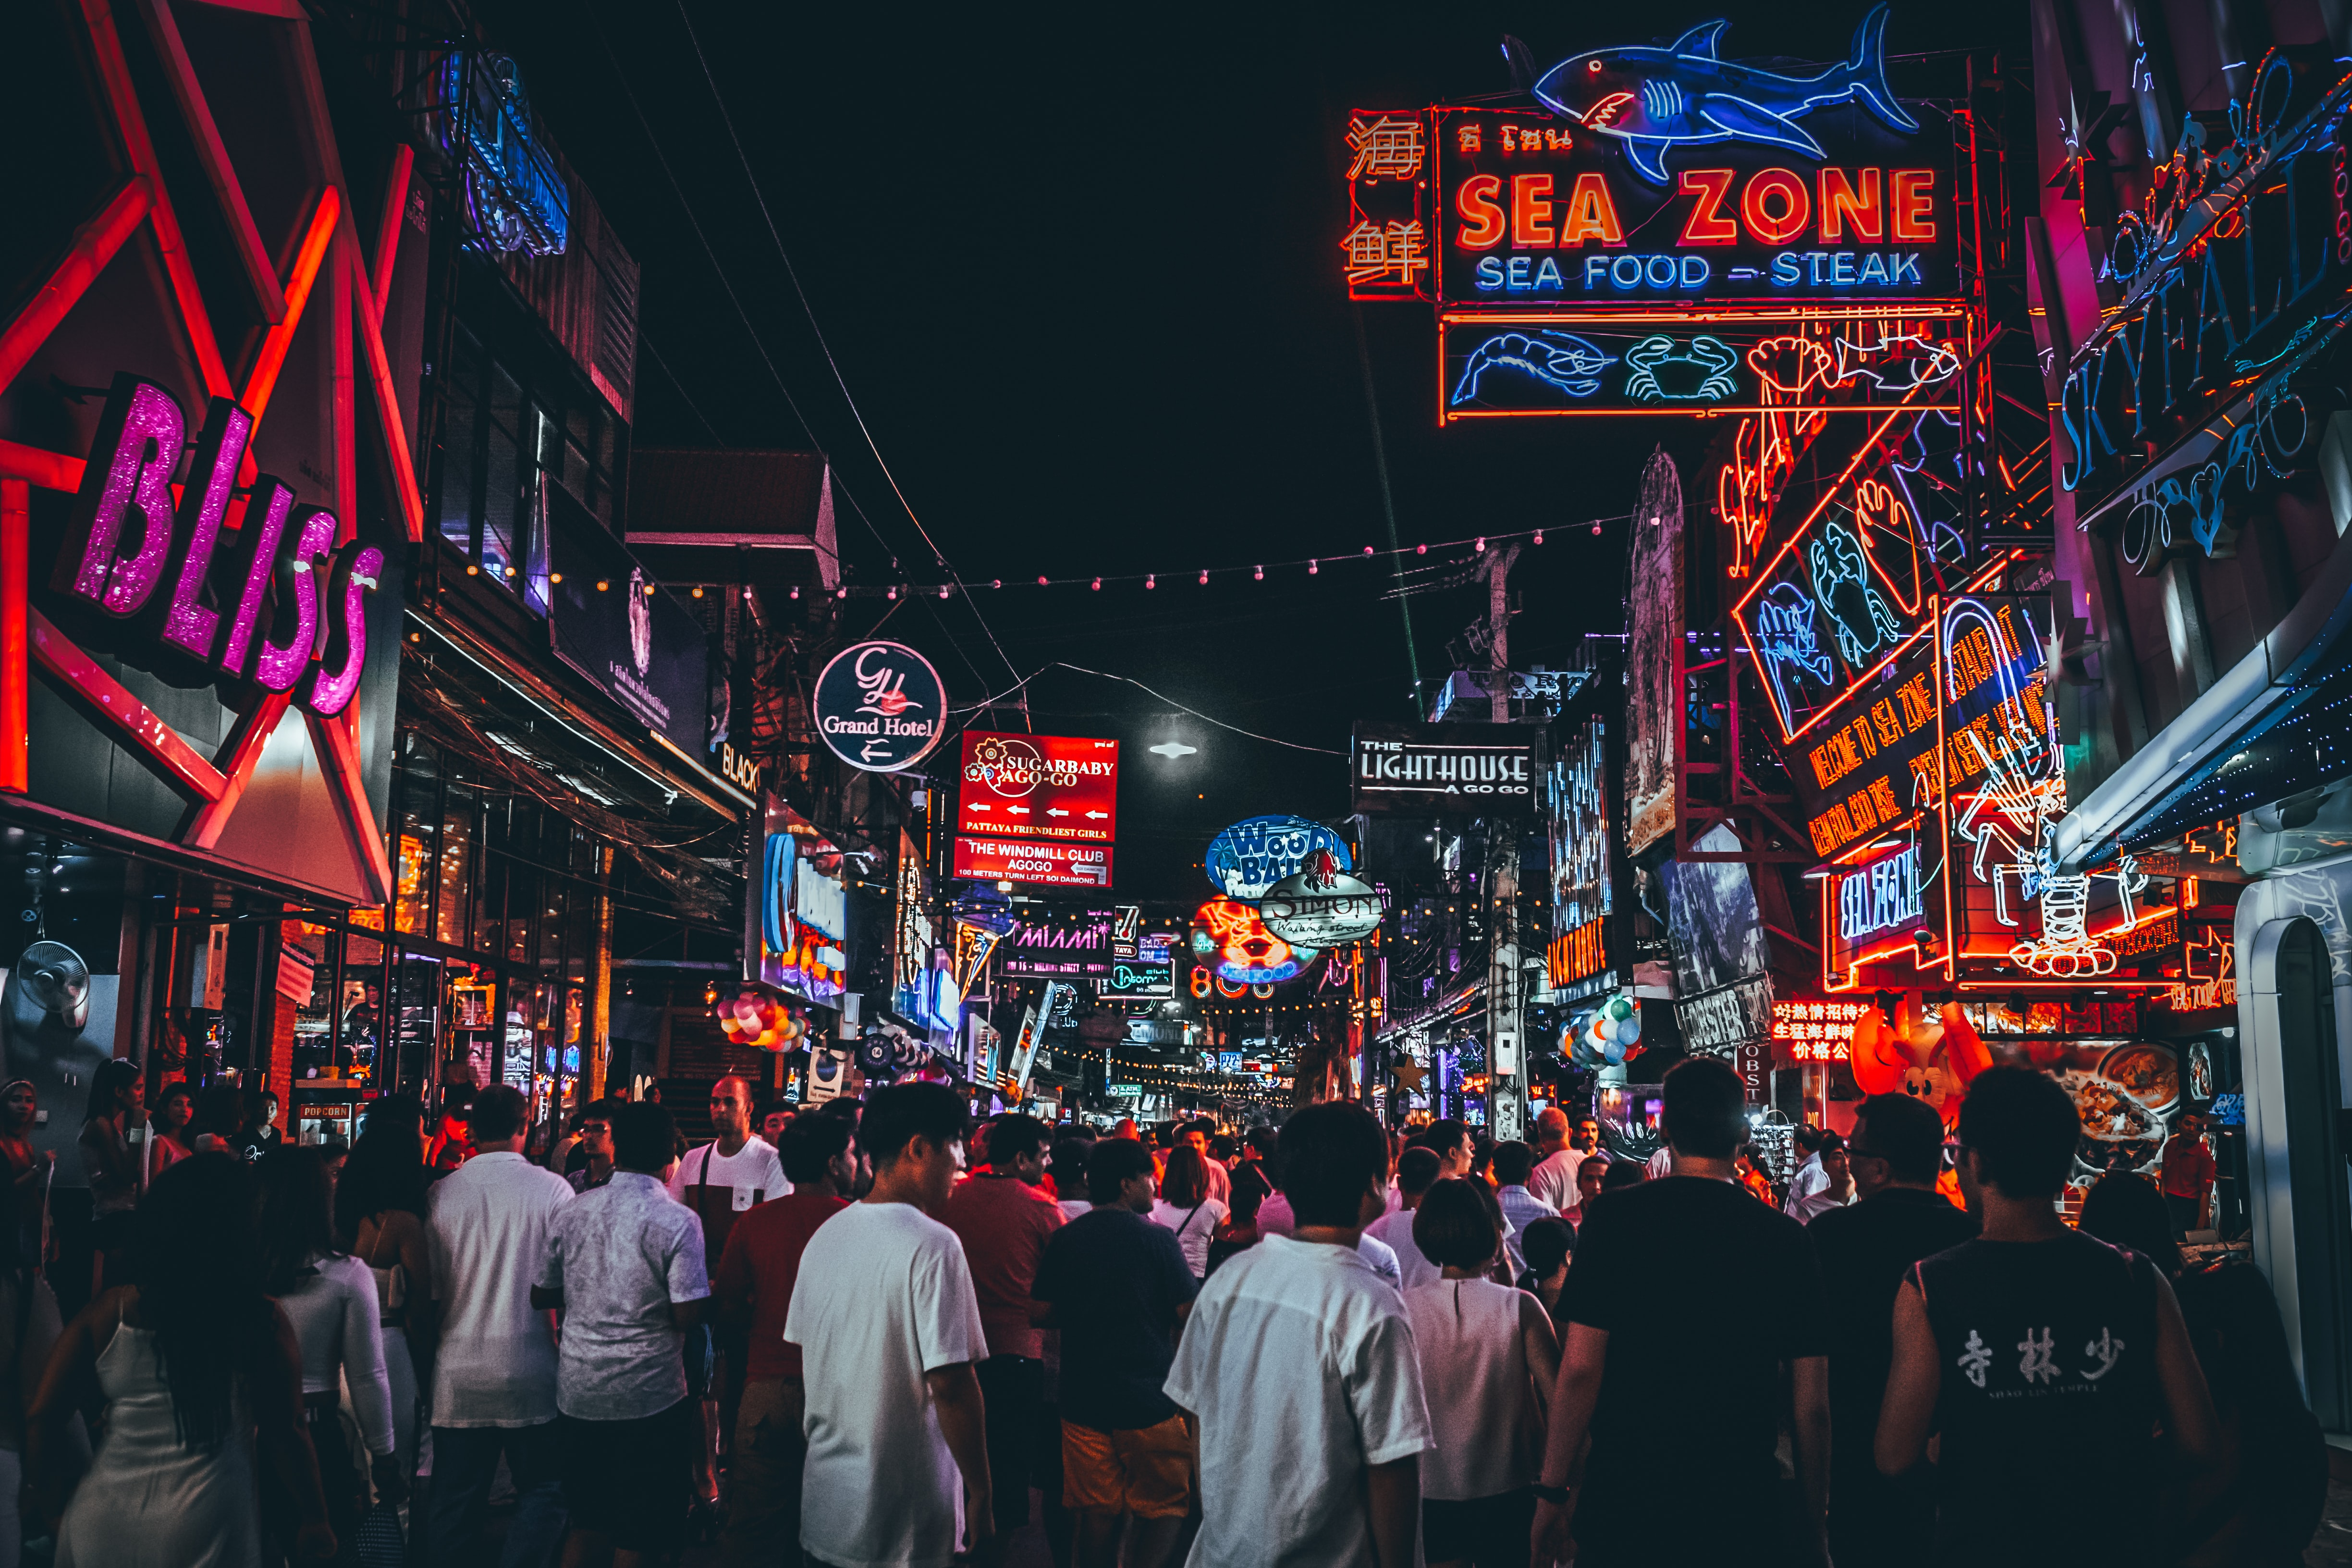 'Drugs were as normal as eating rice': Understanding the experiences and needs of transgender sex workers in Pattaya, Thailand